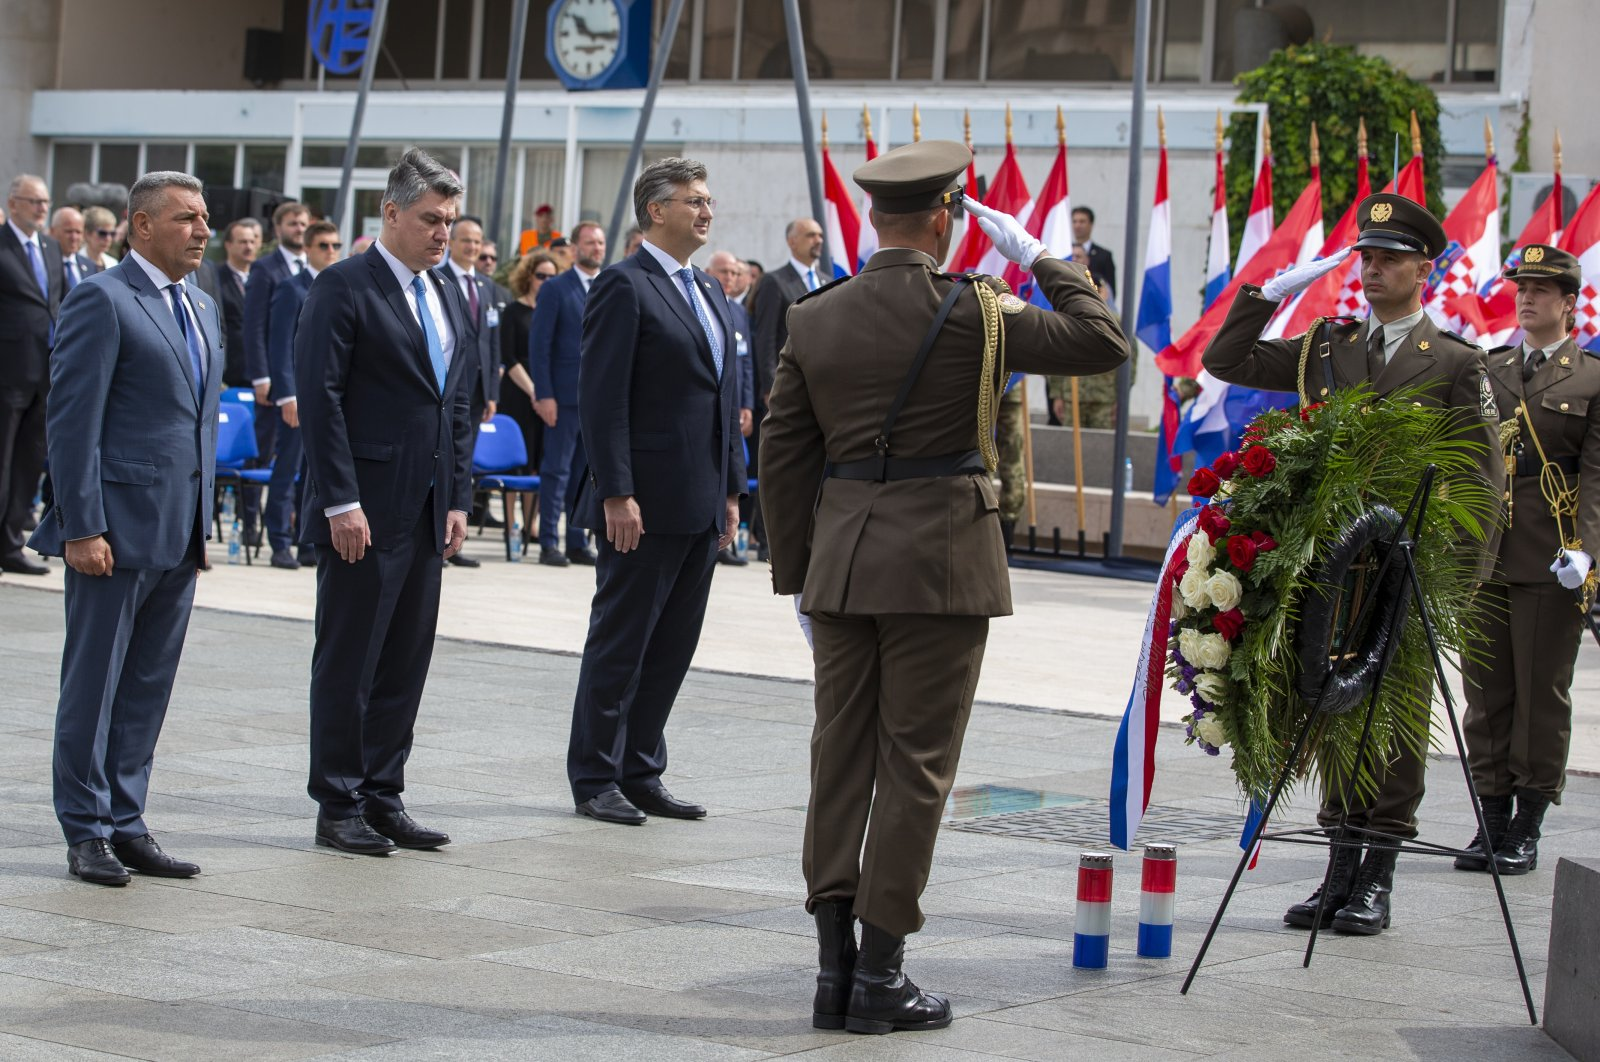 Ret. Gen. Ante Gotovina (L), Croatian President Zoran Milanovic (2nd from L) and Prime Minister Andrej Plenkovic (C) attend a ceremony in Knin, Croatia, Aug. 5, 2020. (AP Photo)